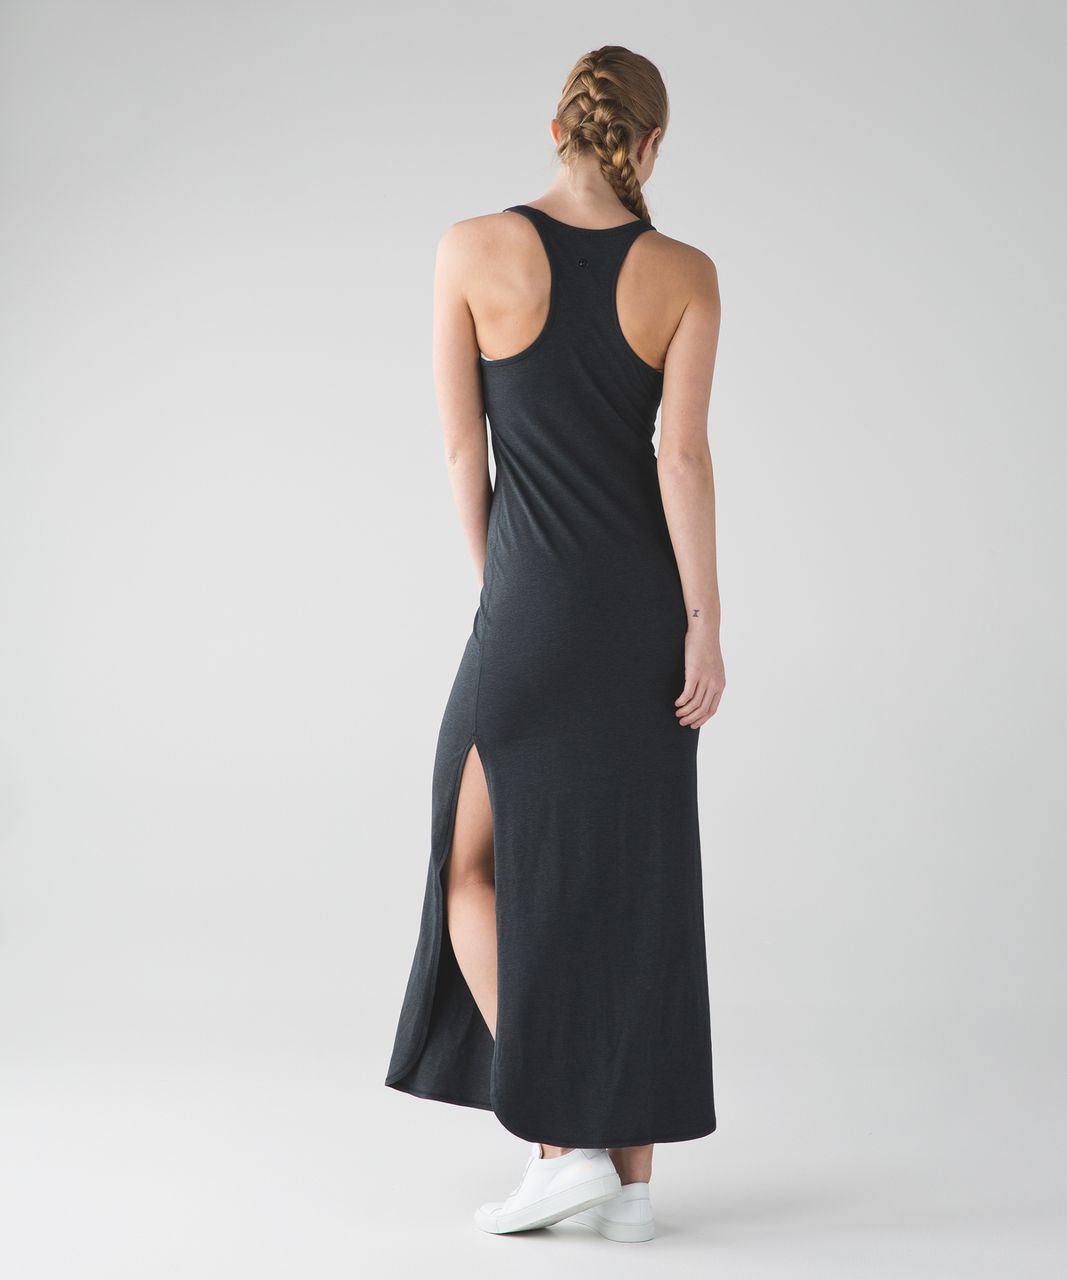 a60c04eb690 Lululemon Refresh Maxi Dress II - Heathered Black (First Release) - lulu  fanatics